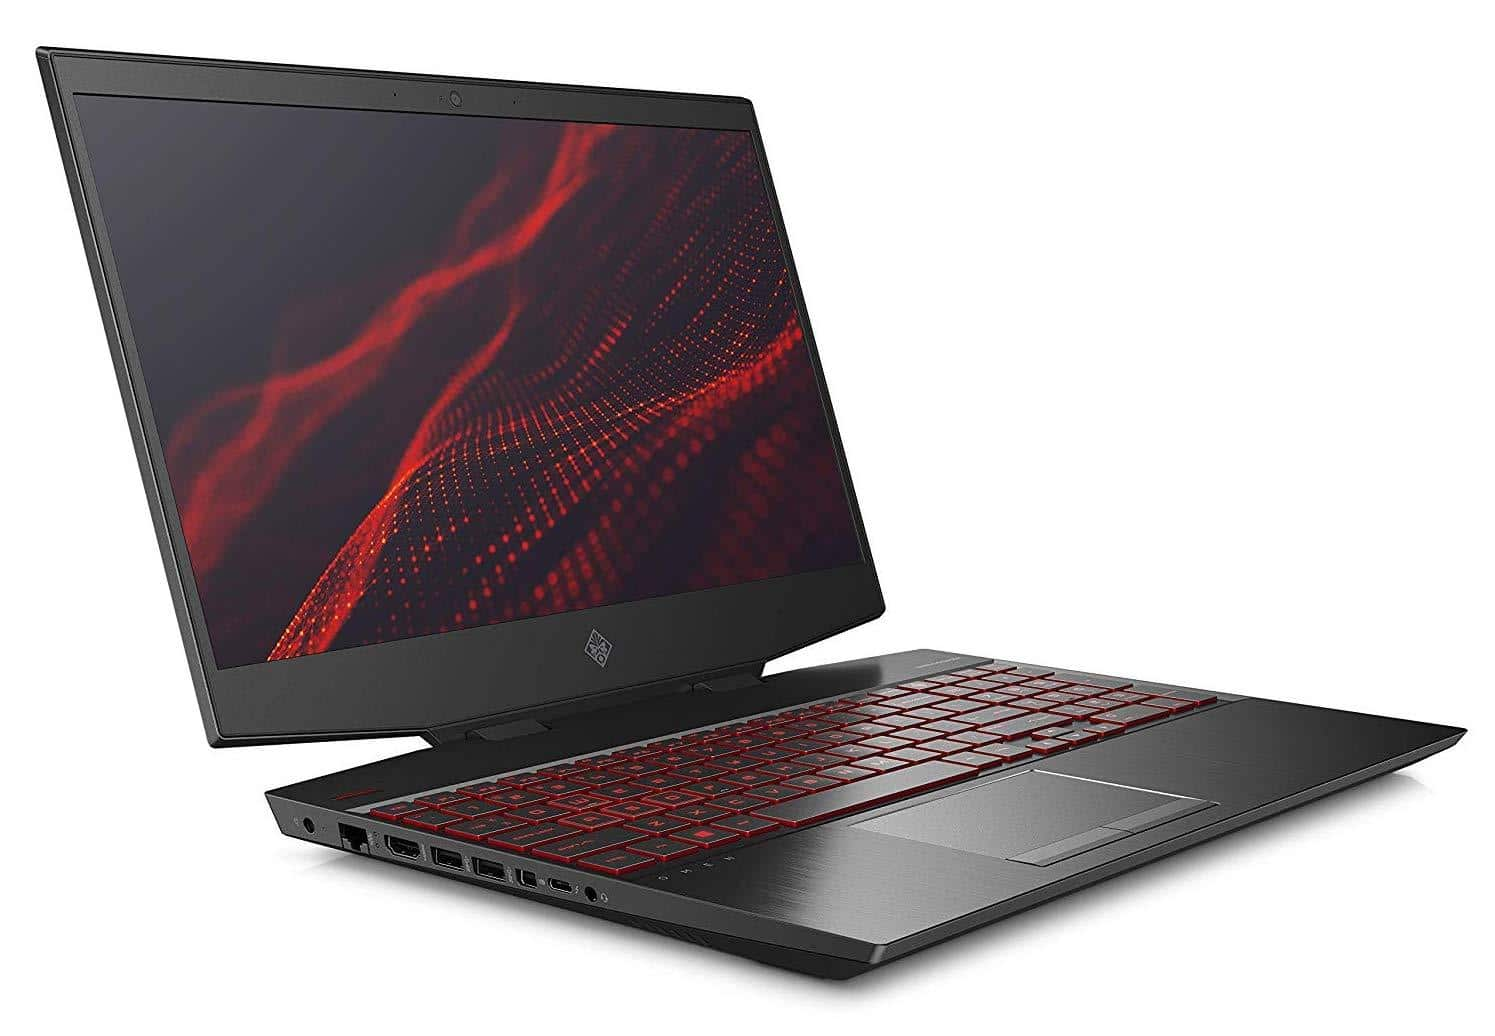 HP Omen 15-dh0059nf, PC gamer 15 pouces fin 144Hz (1079€)